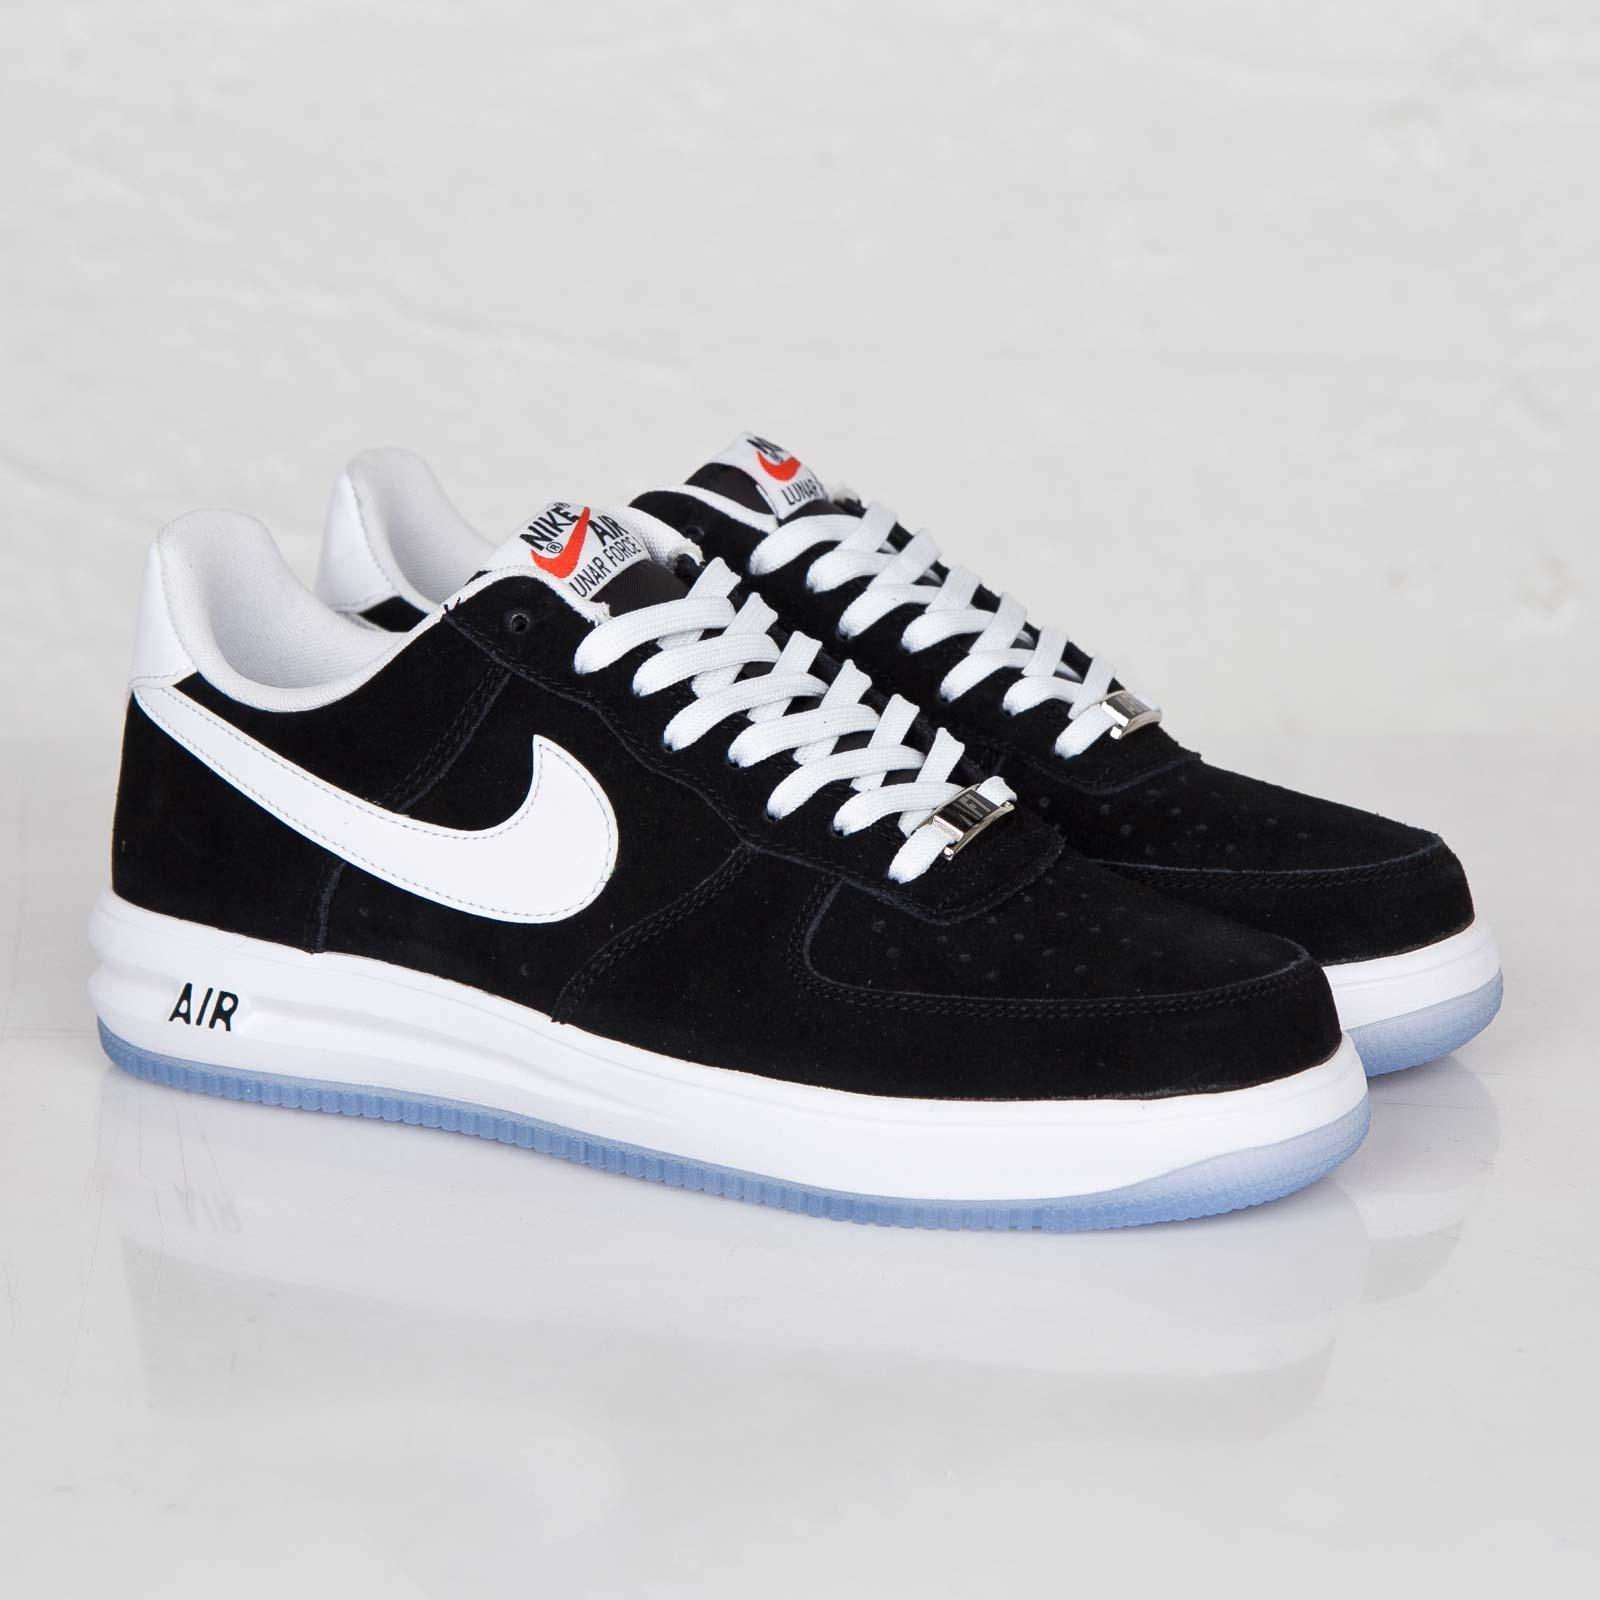 70f368354790 Nike Lunar Force 1 14 - 654256-005 - Sneakersnstuff